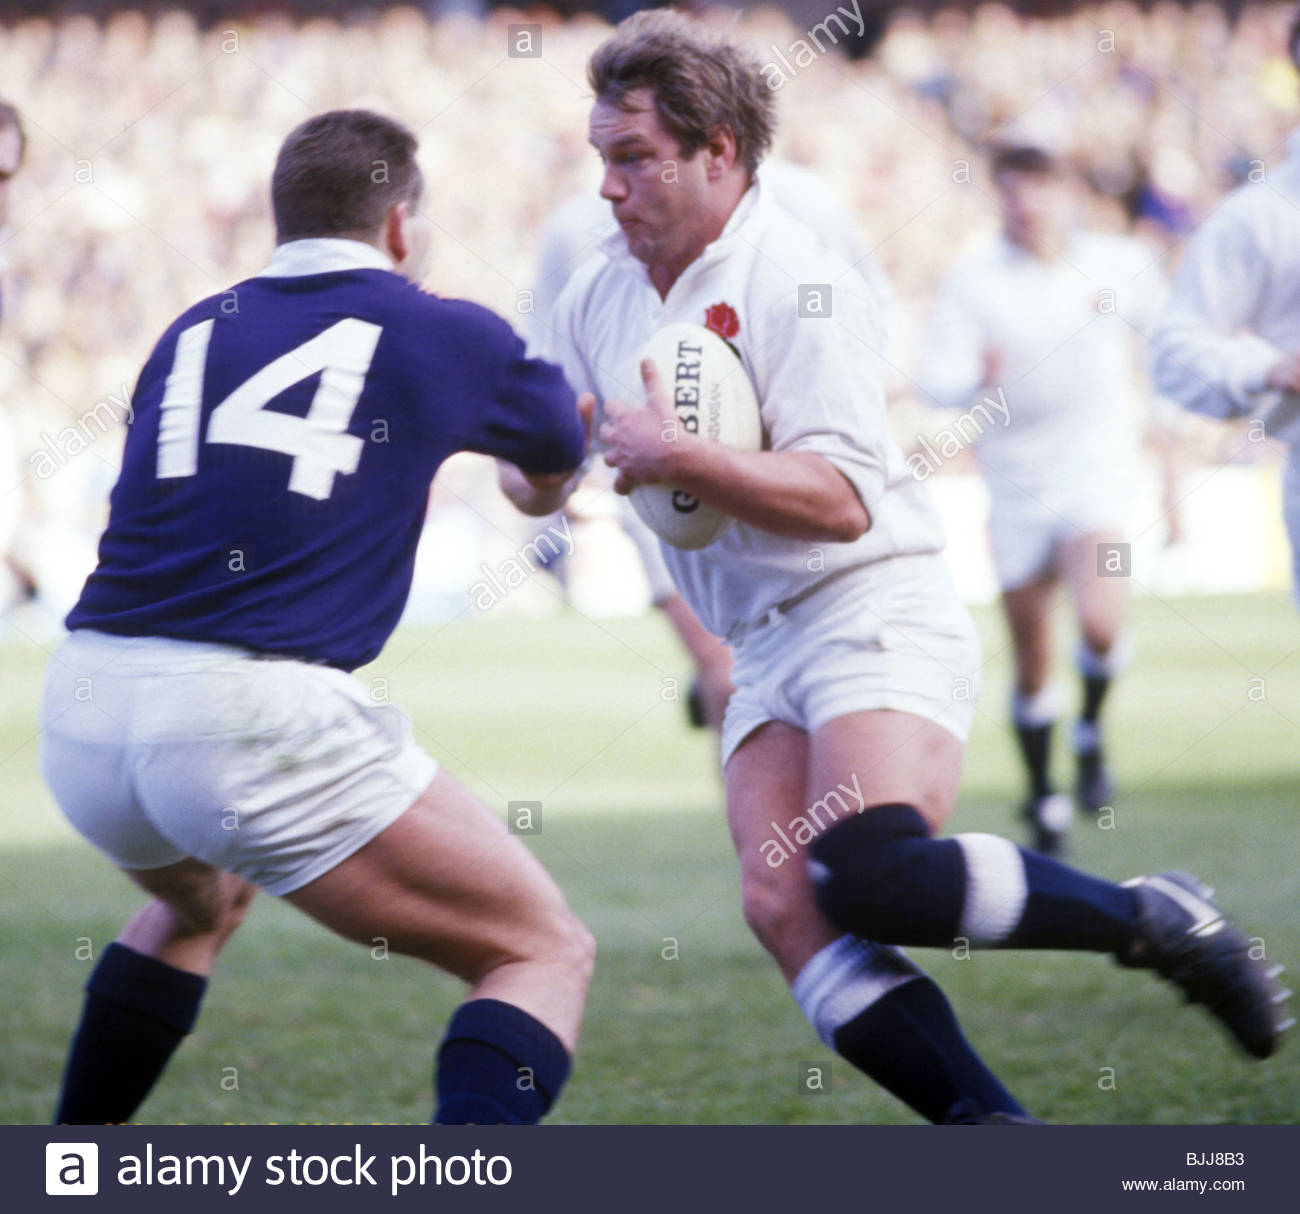 05/03/88 FIVE NATIONS SCOTLAND V ENGLAND (6-9) MURRAYFIELD - EDINBURGH England prop Jeff Probyn (right) charges - Stock Image